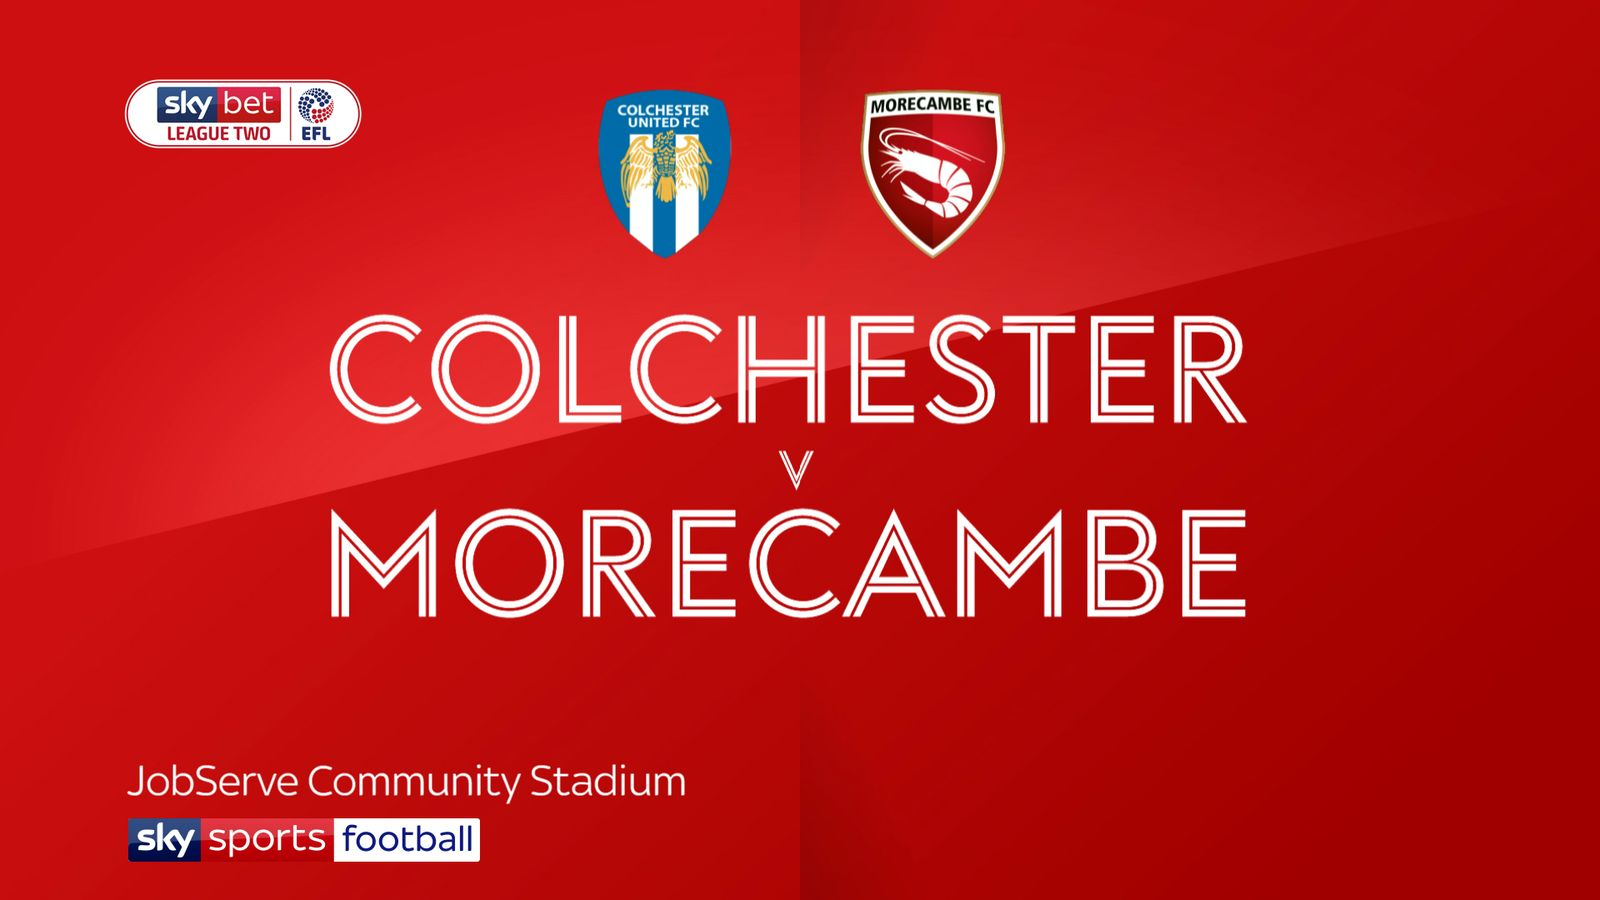 Colchester 0-1 Morecambe: Jim Bentley's side move off bottom